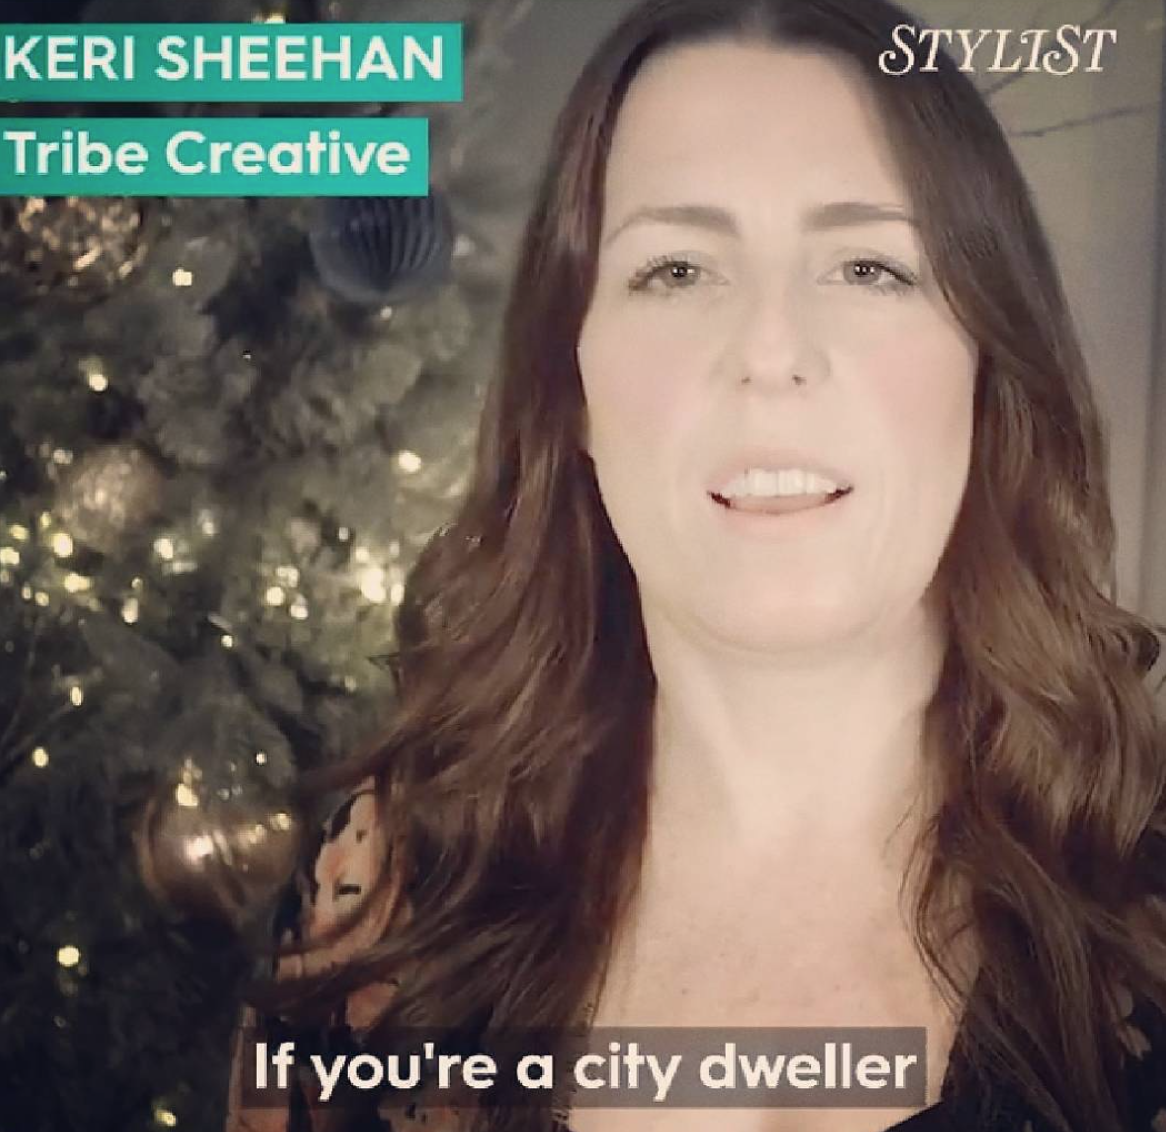 Stylist Dec 2017 - Online content for Stylist magazine in collaboration with John Lewis and Heals.